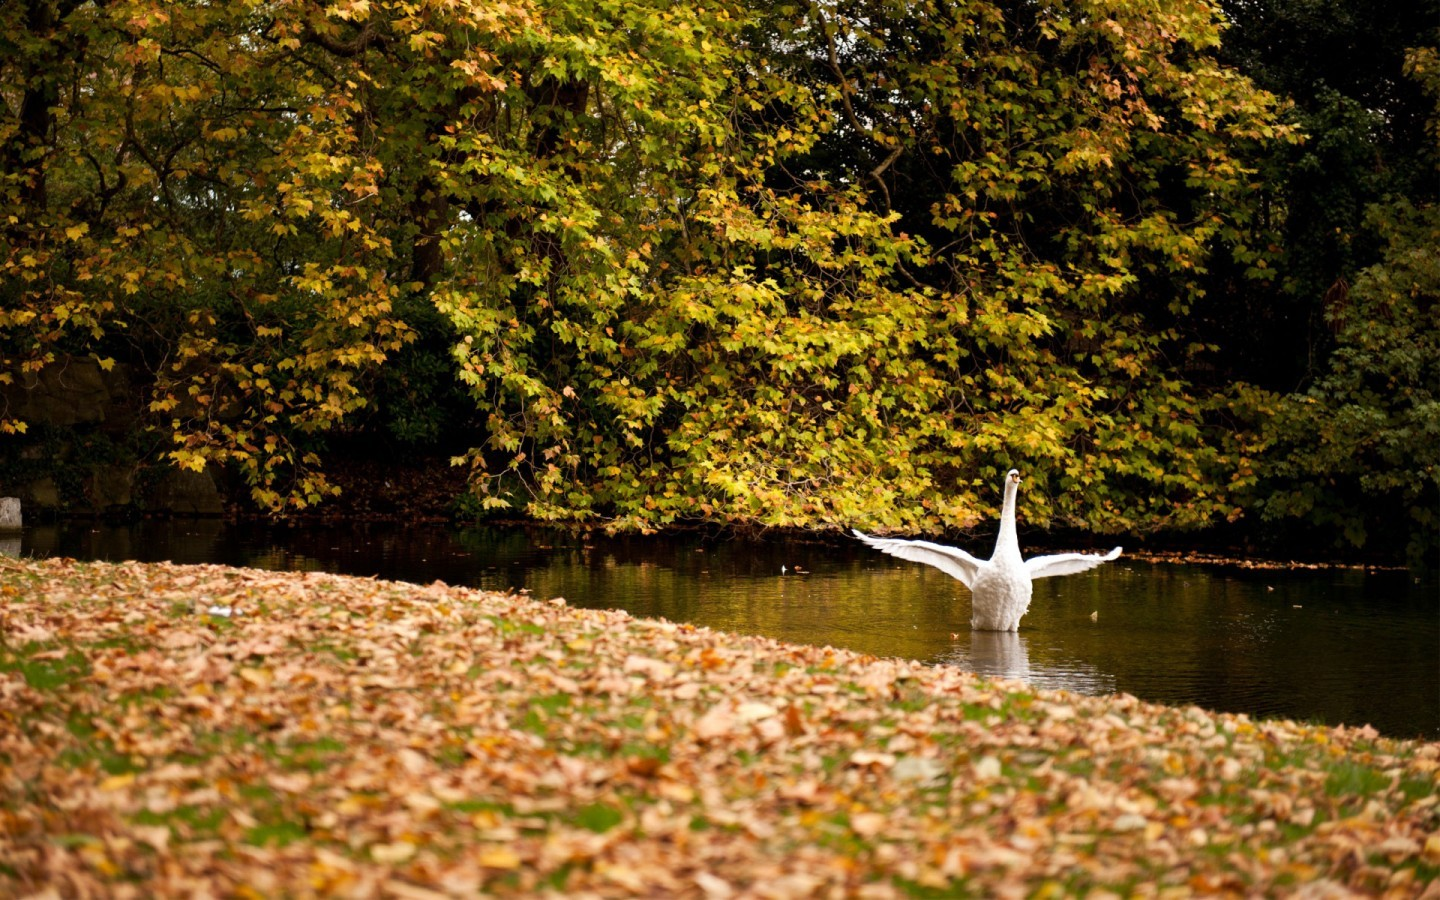 43450 download wallpaper Animals, Landscape, Nature, Birds, Swans screensavers and pictures for free